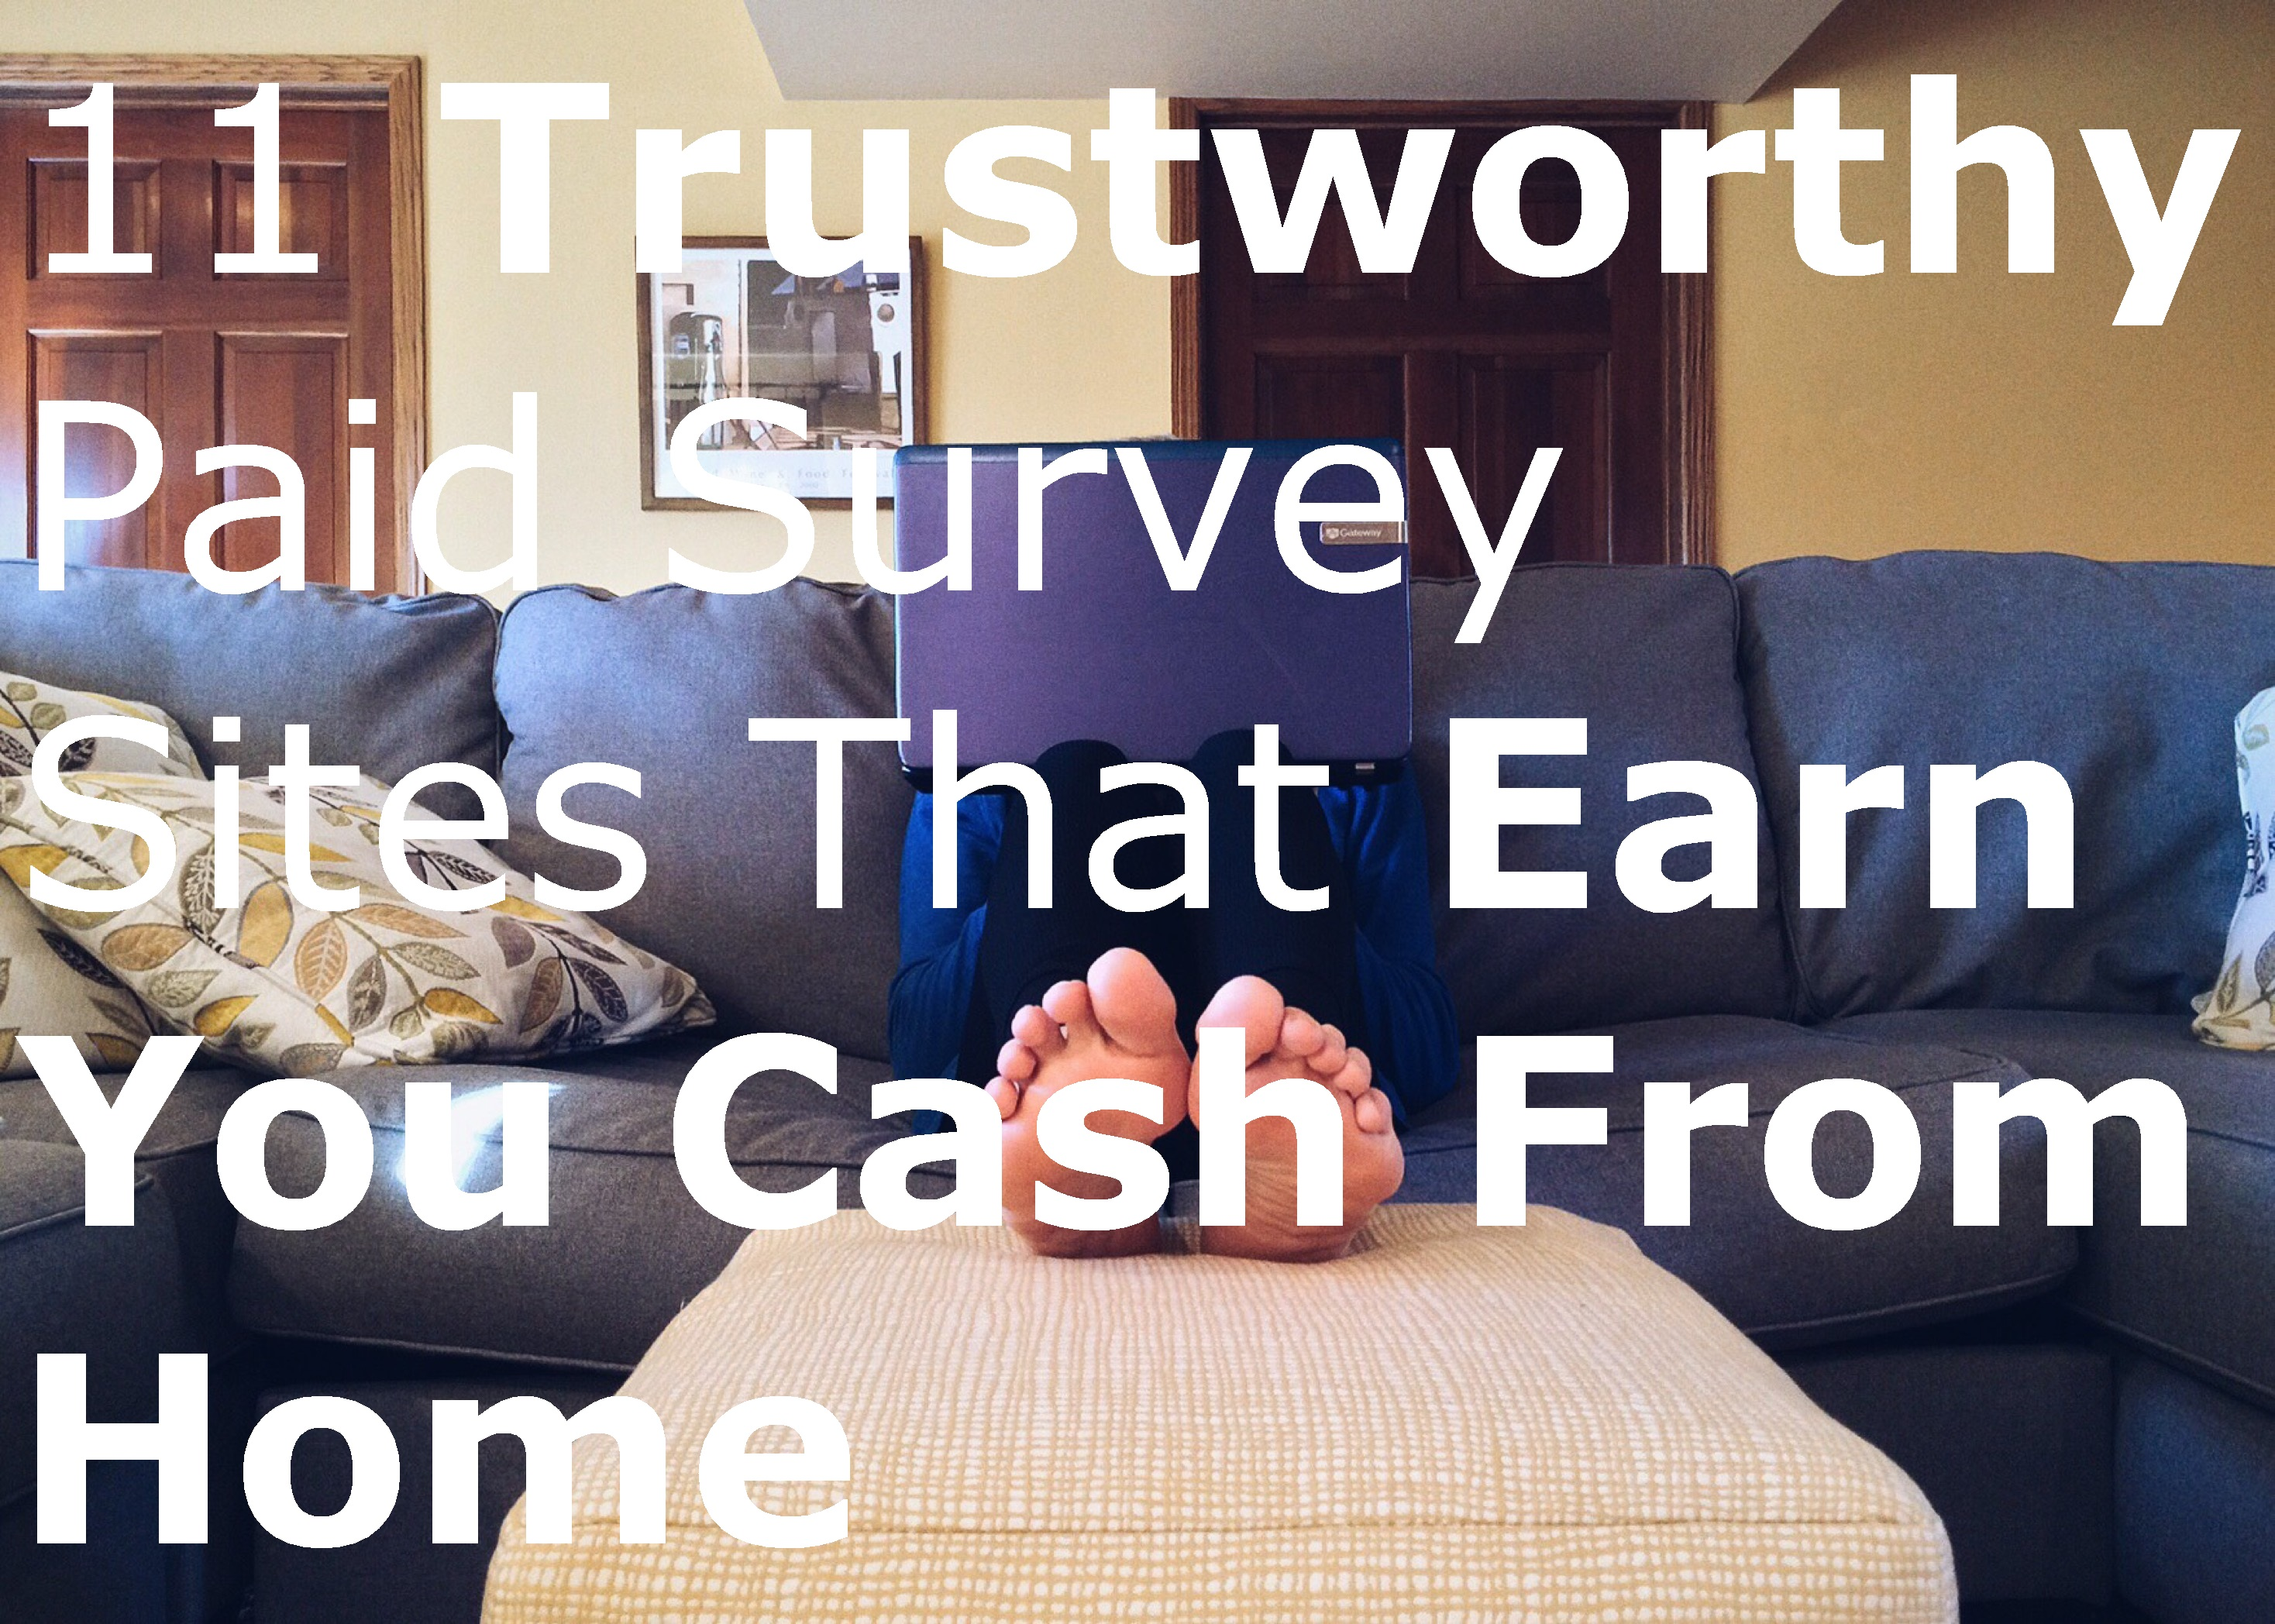 11 Trustworthy Paid Survey Sites That Earn You Cash From